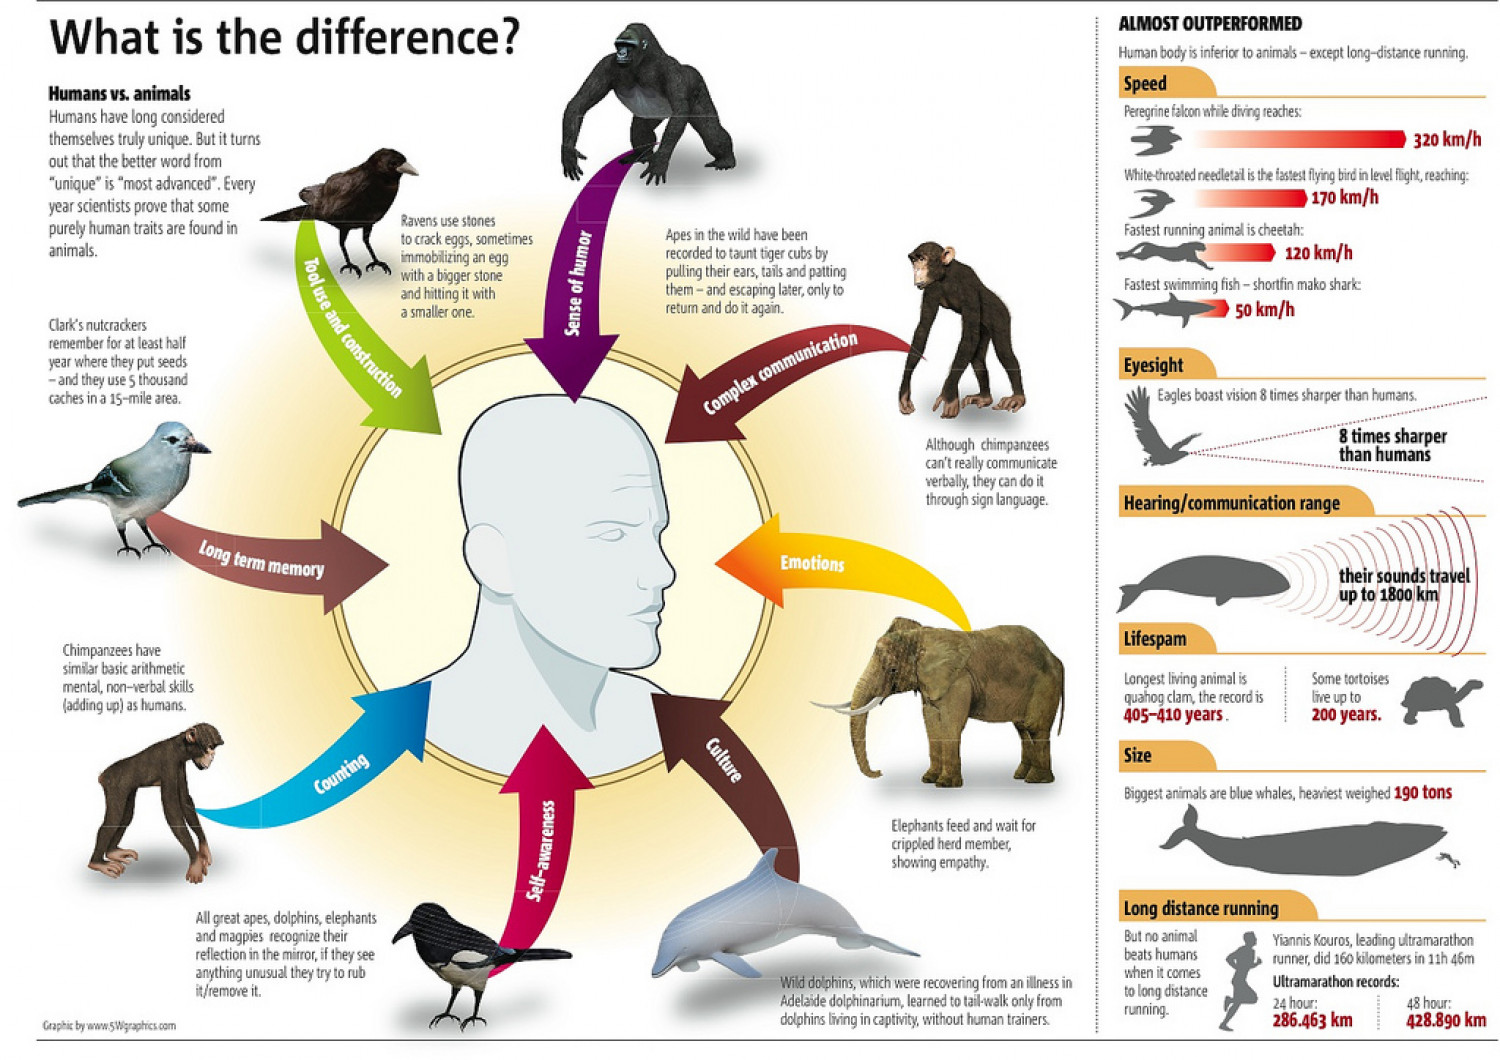 the differences between animals and humans There are distinct differences between the brain of a human and that of an animal while the size and extent of the differences can vary based on whether we are discussing a mammal, a primate, a non-vertebrate, or a crustacean, to name a few, we are just looking at the tip of the iceberg when we think about what separates us from other animals.